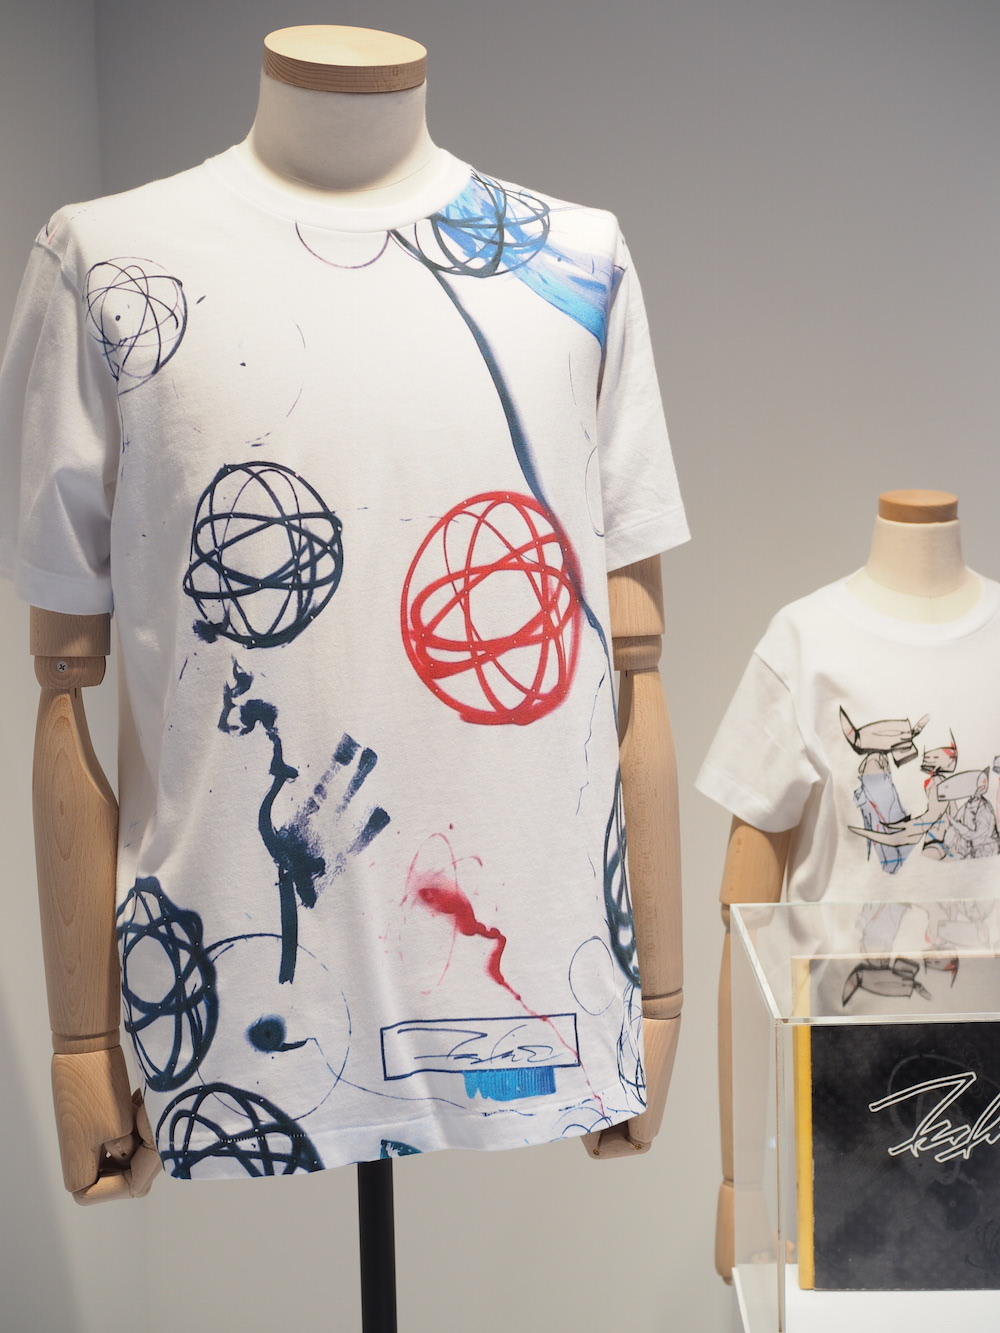 artistic UT T-shirt designs on display at Uniqlo Lifewear 2017 SS exhibit in Tokyo